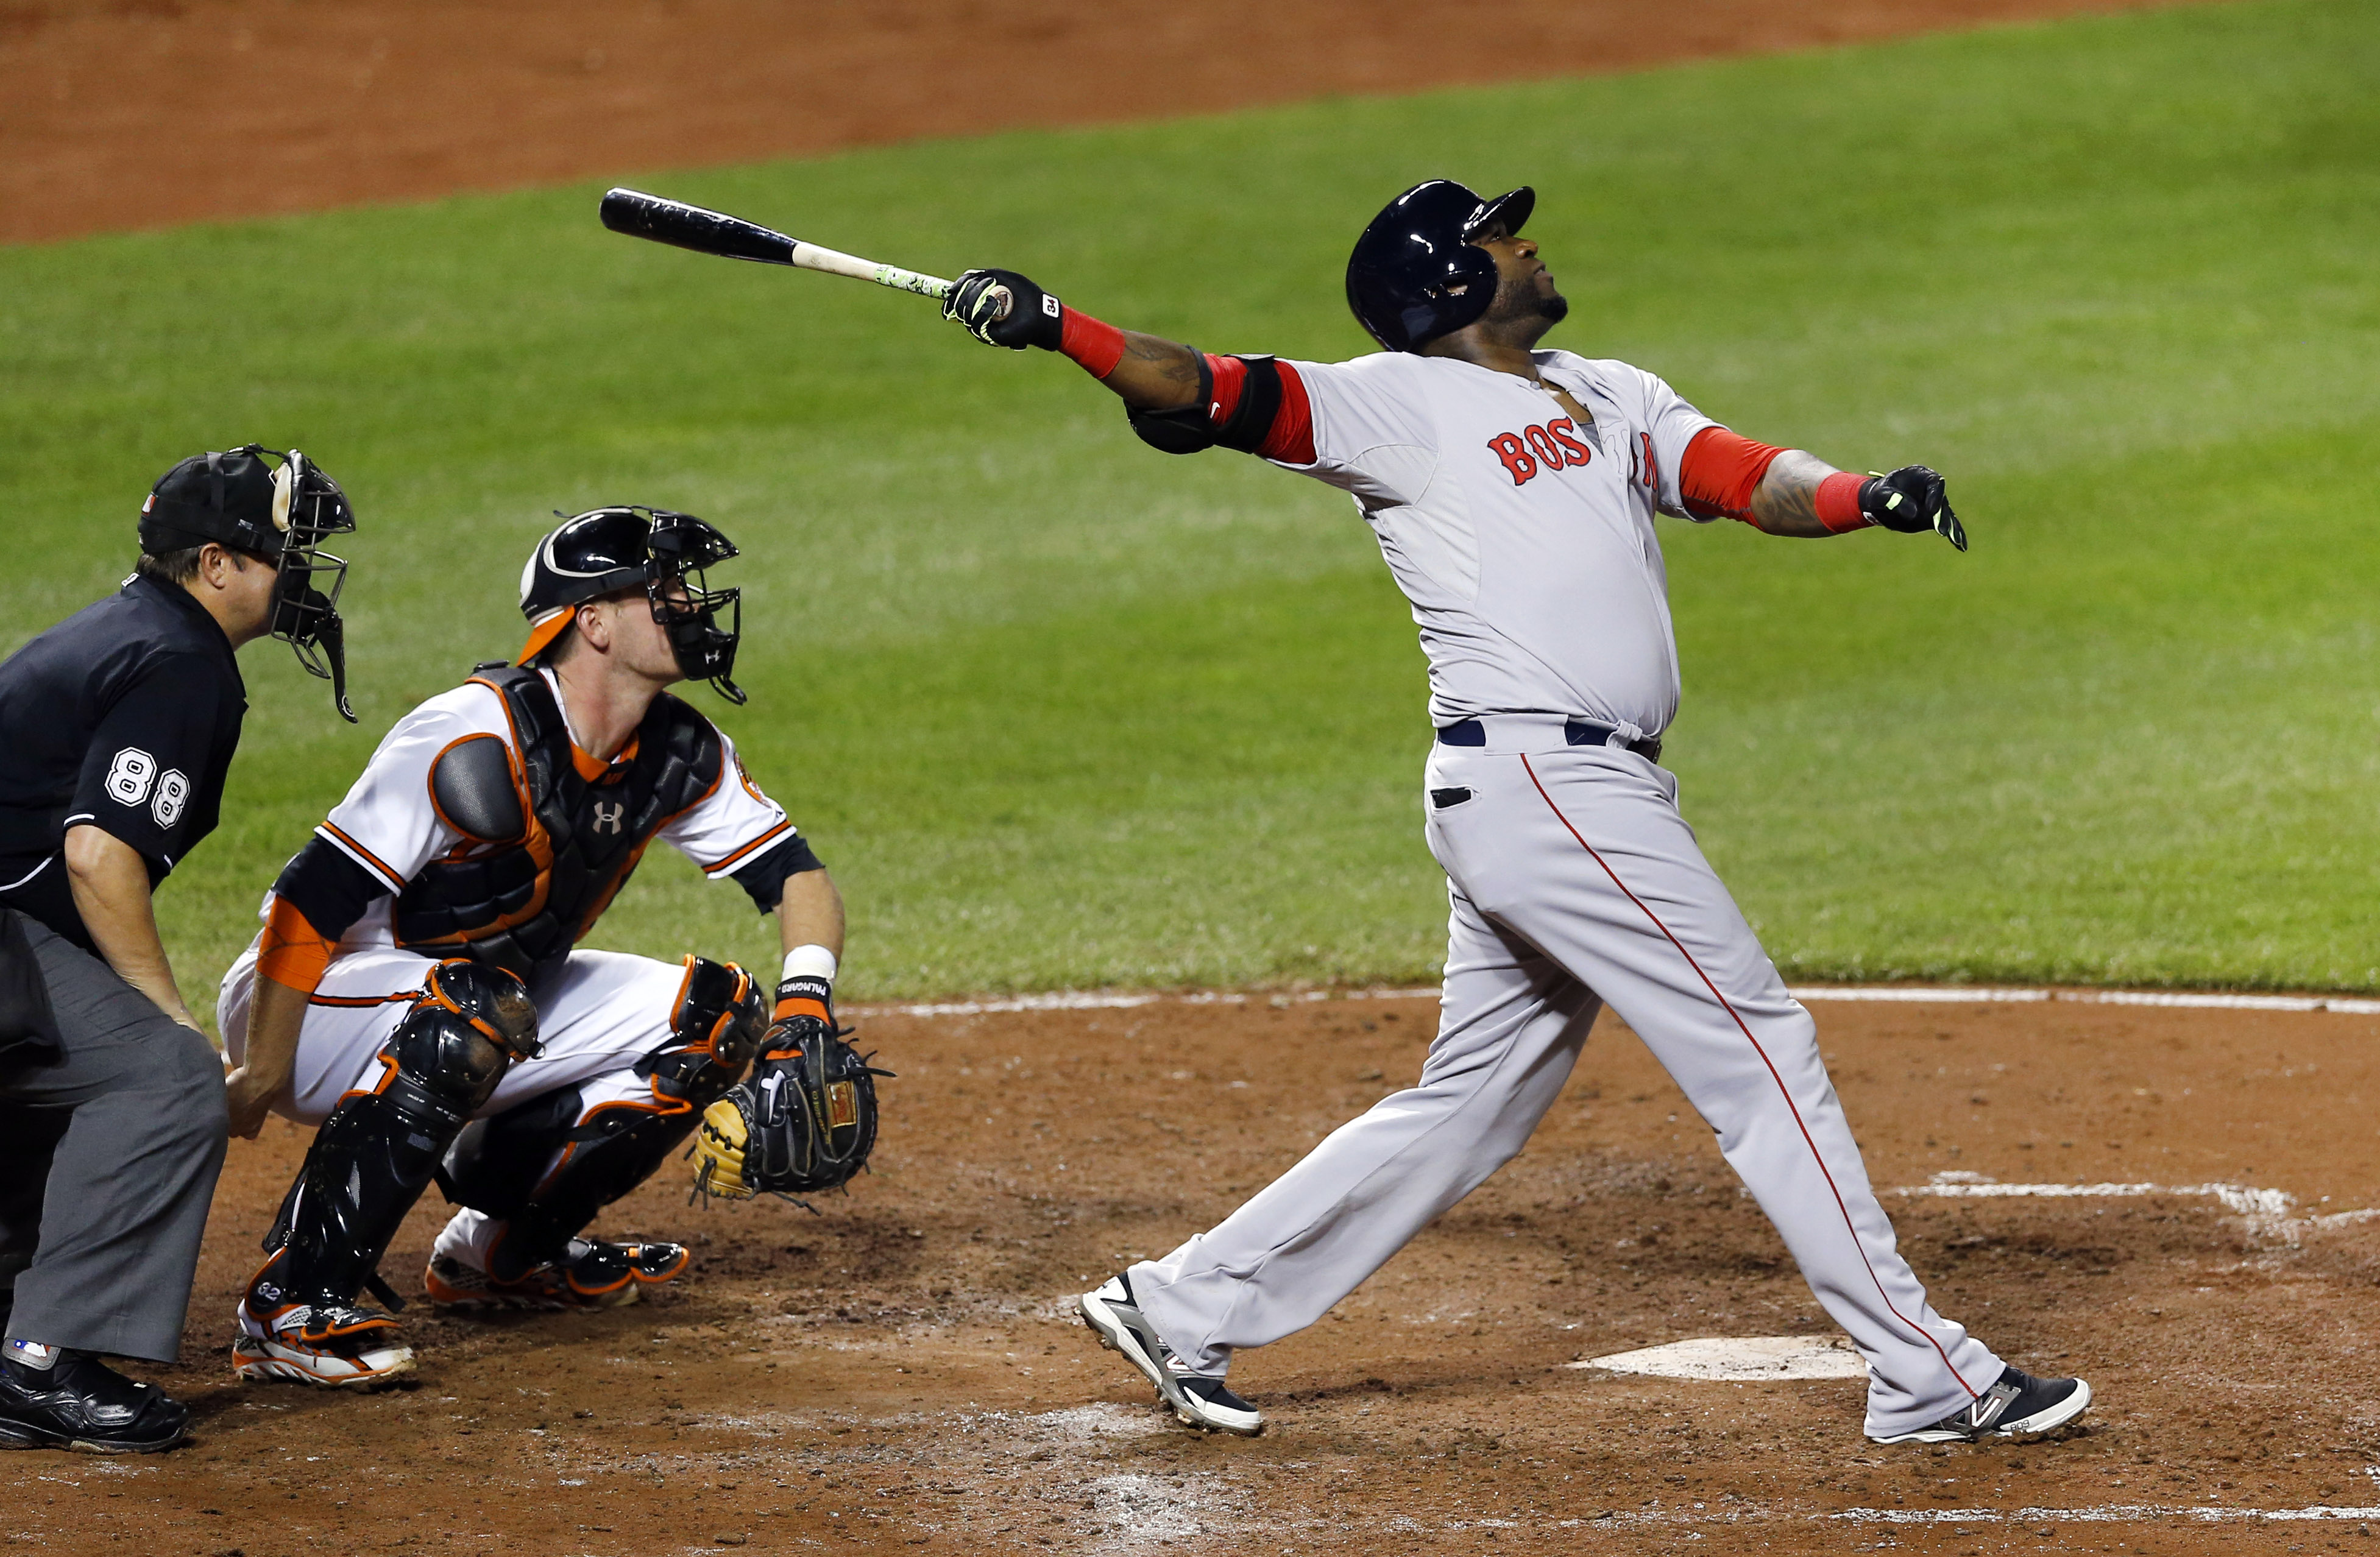 Boston Red Sox's David Ortiz watches his sacrifice fly ball in front of Baltimore Orioles catcher Matt Wieters and home plate umpire Doug Eddings in the fifth inning of a baseball game, Tuesday, Sept. 15, 2015, in Baltimore. Dustin Pedroia scored on the p